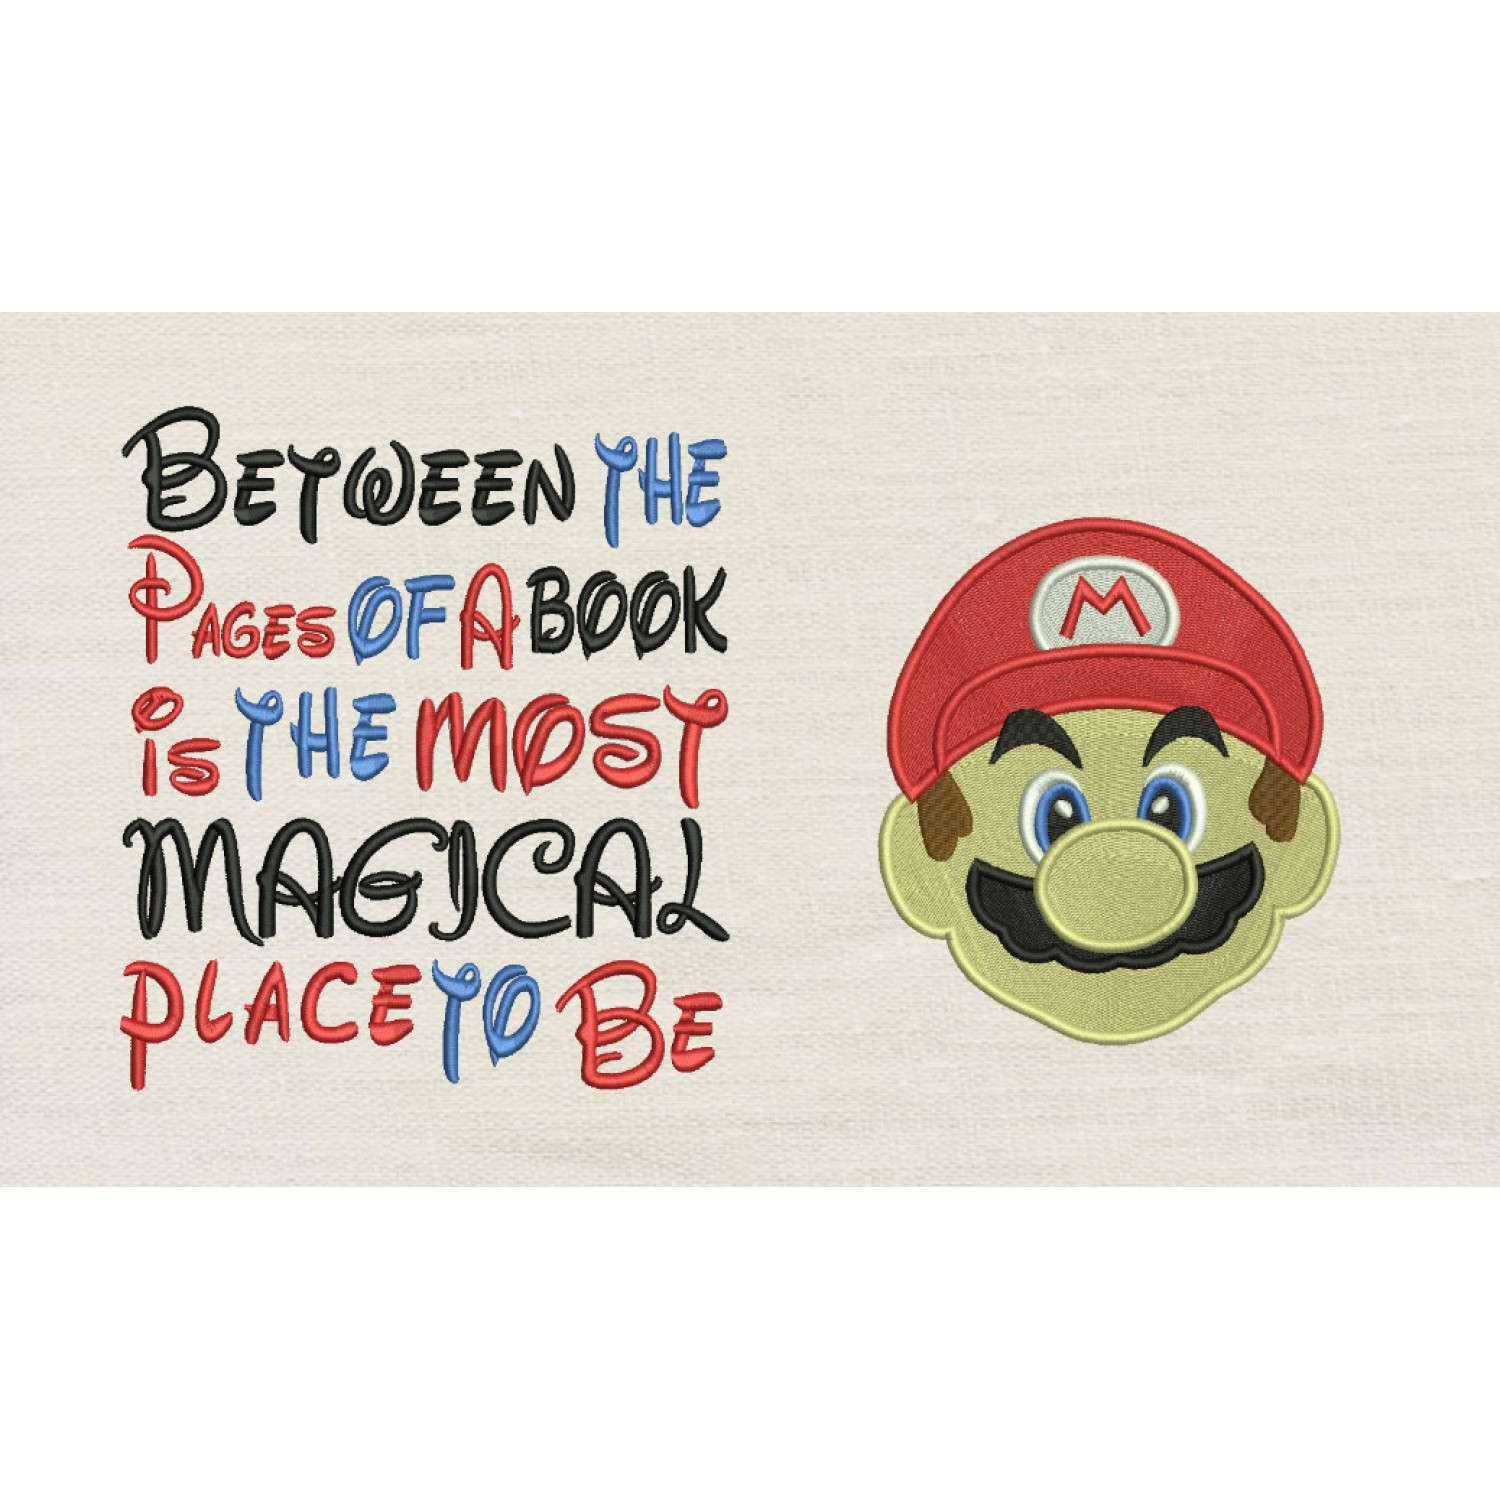 Mario Embroidery v2 with Between the Pages